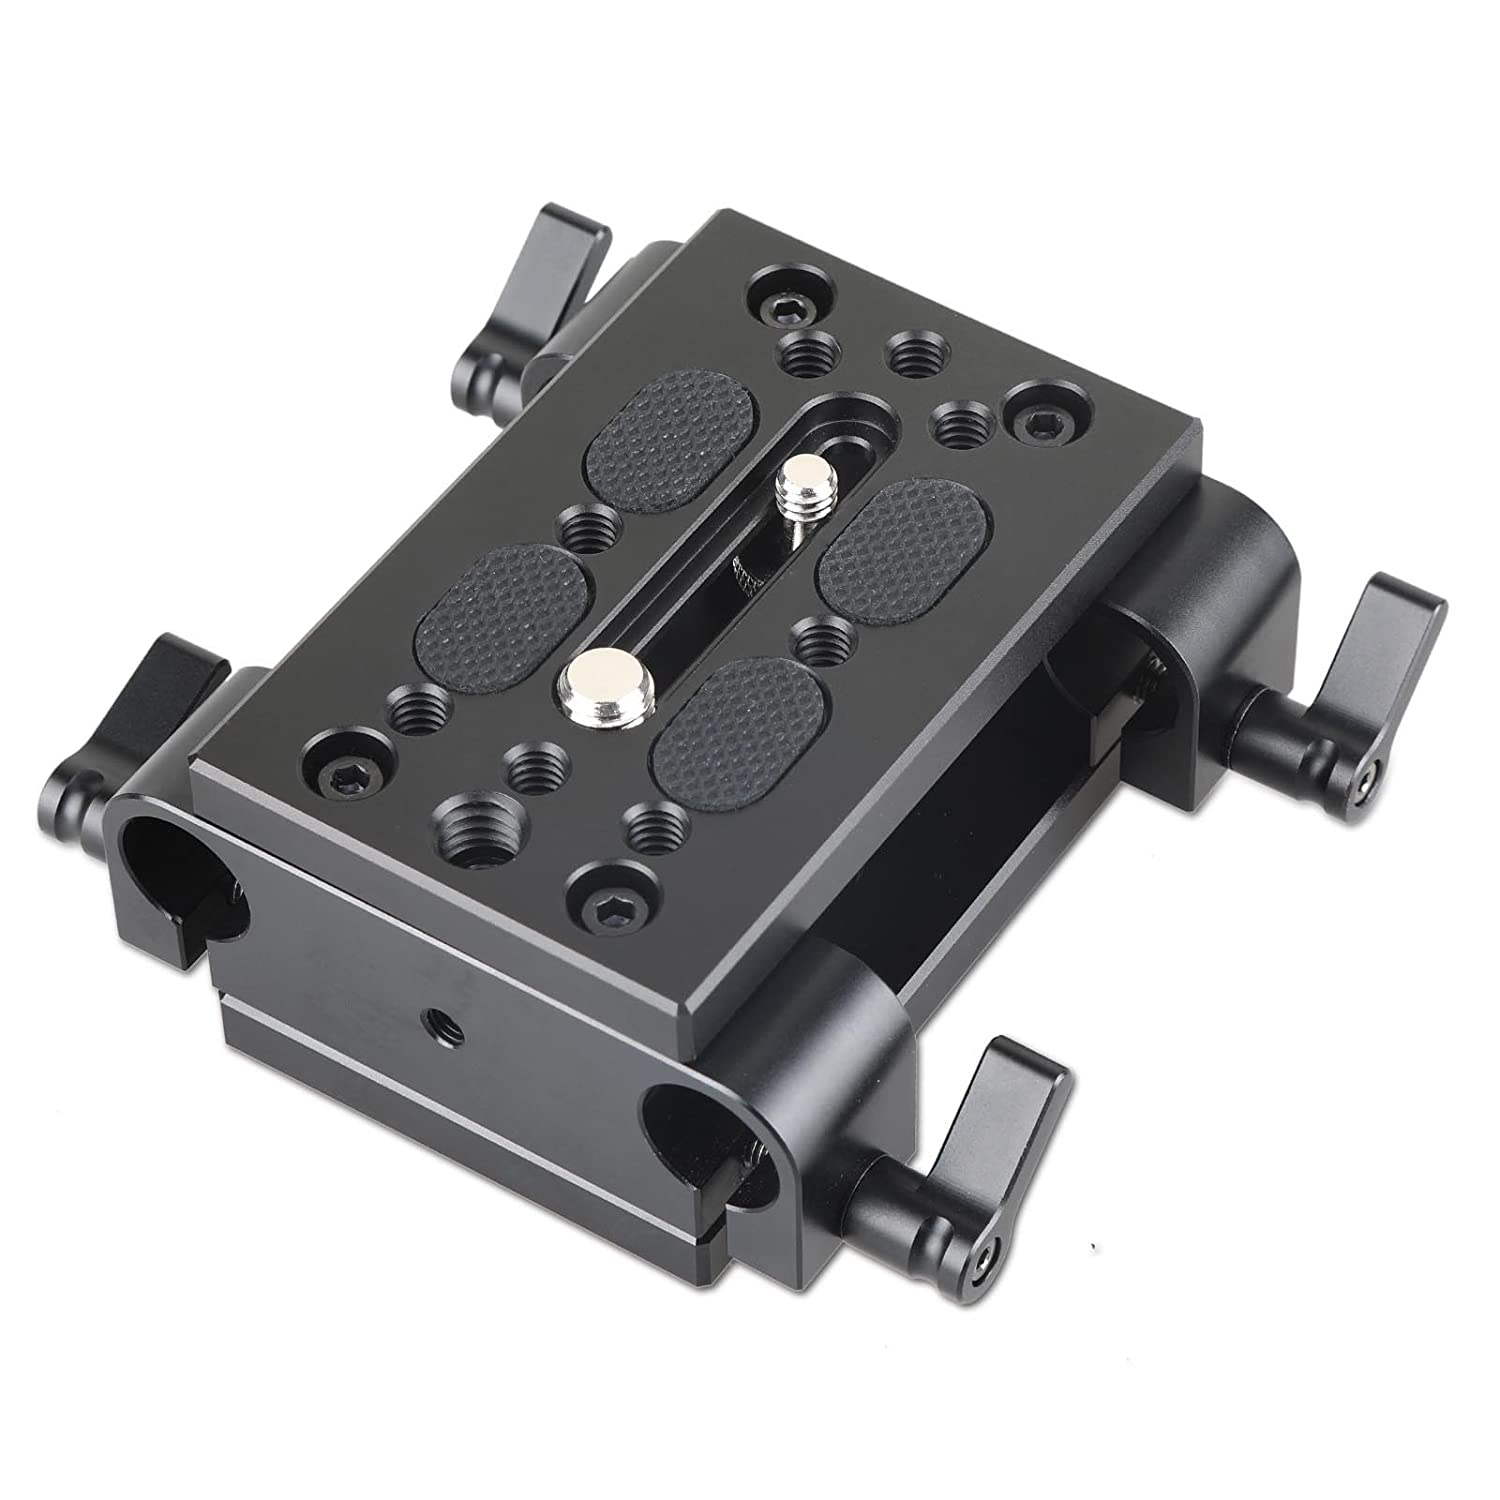 SmallRig Multi-Function Mounting Plate Cheese Plate with 1/4' and 3/8' Connections for Sony F970/F550 Battery on Monitors for Lilliput Fa1011, Fa1013, 669hb, 669gl, 869gl & for Coollcd 619ah - 904